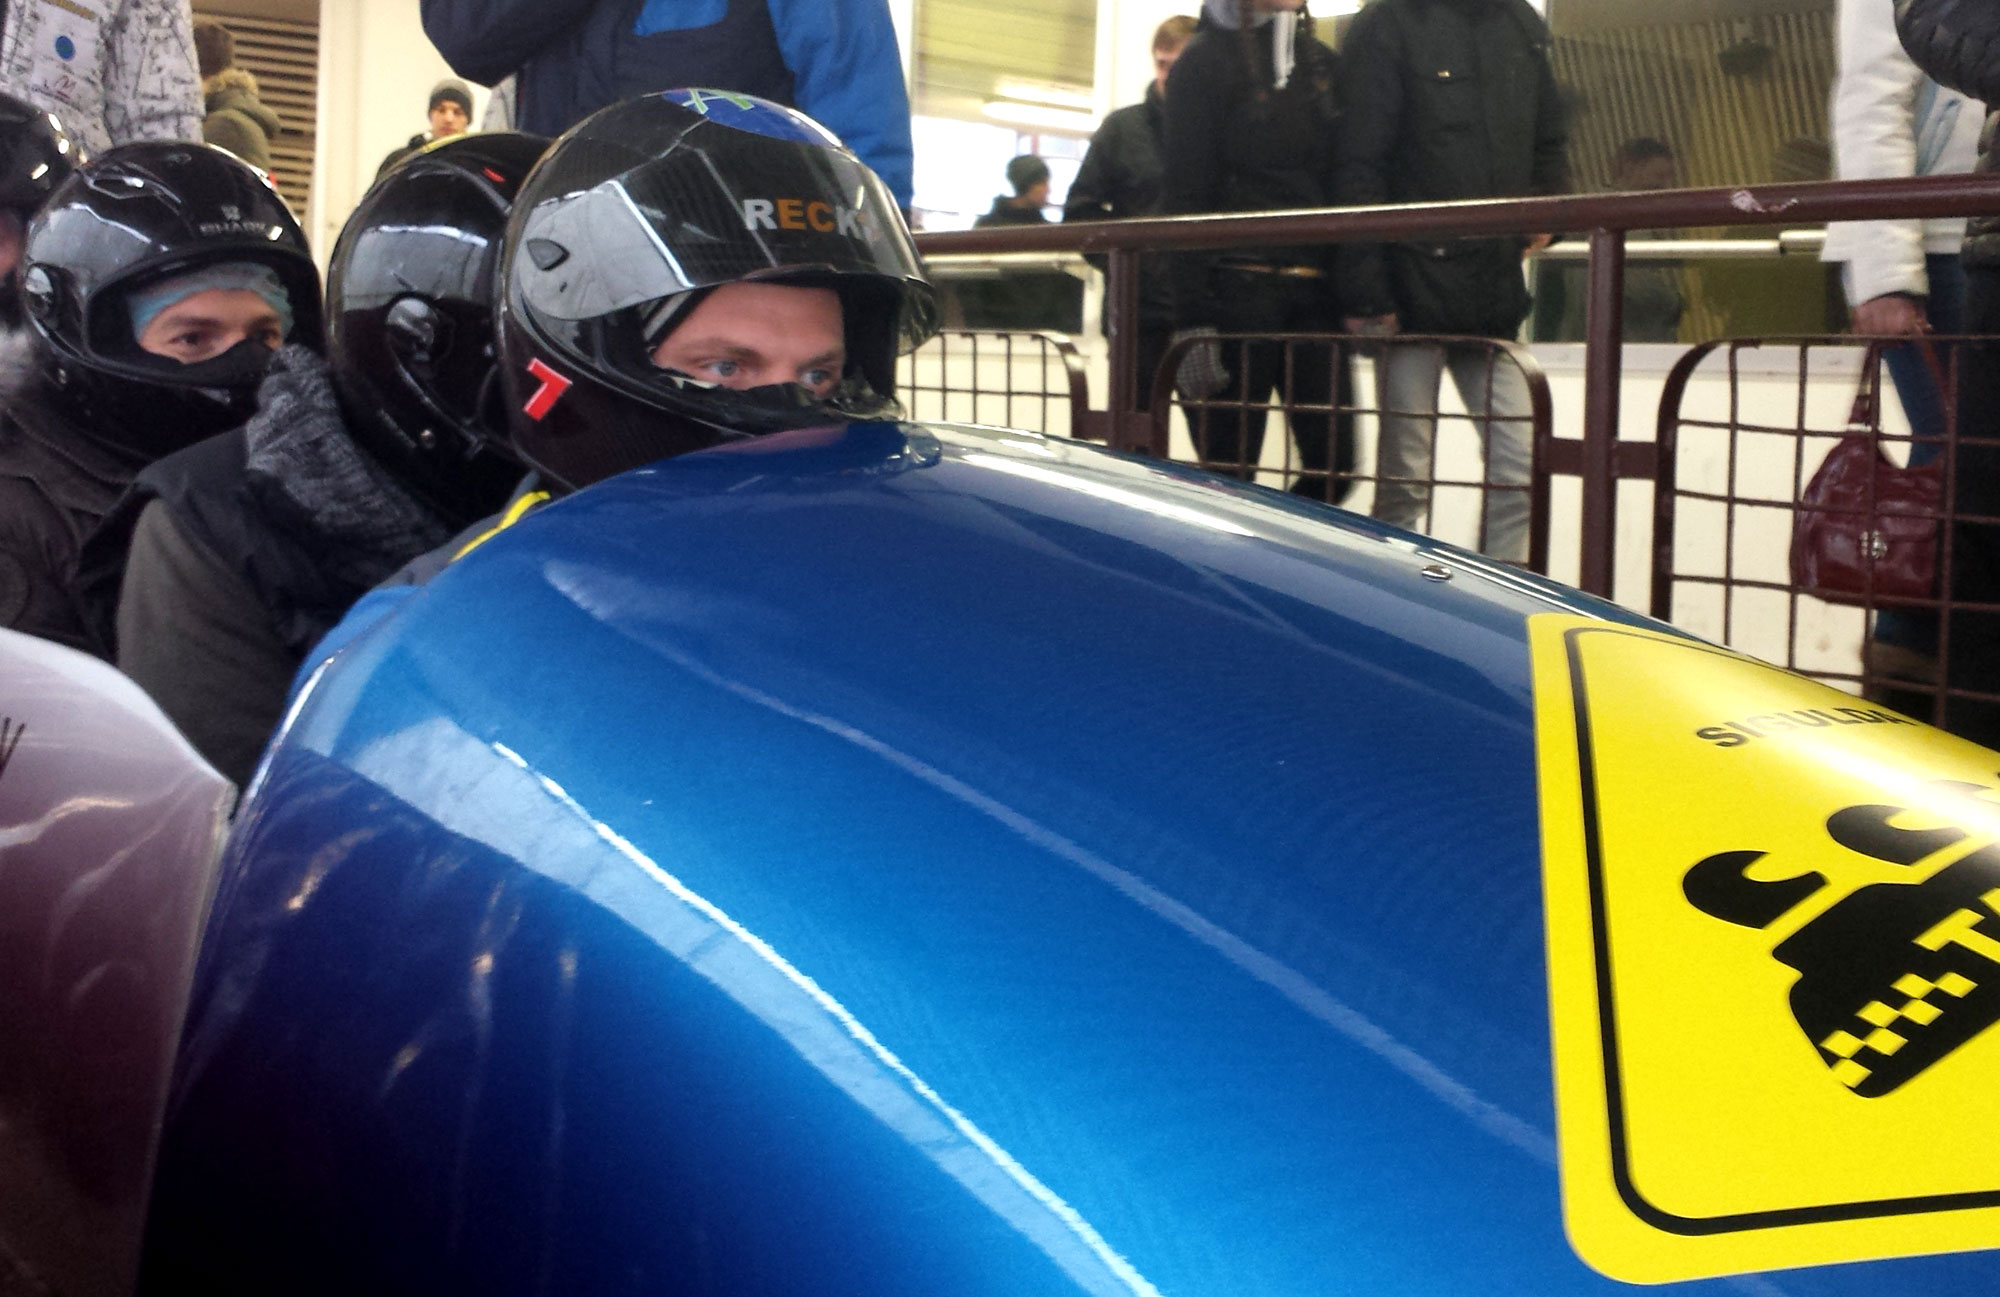 Bobsleigh Ride Experience in Sigulda, Latvia